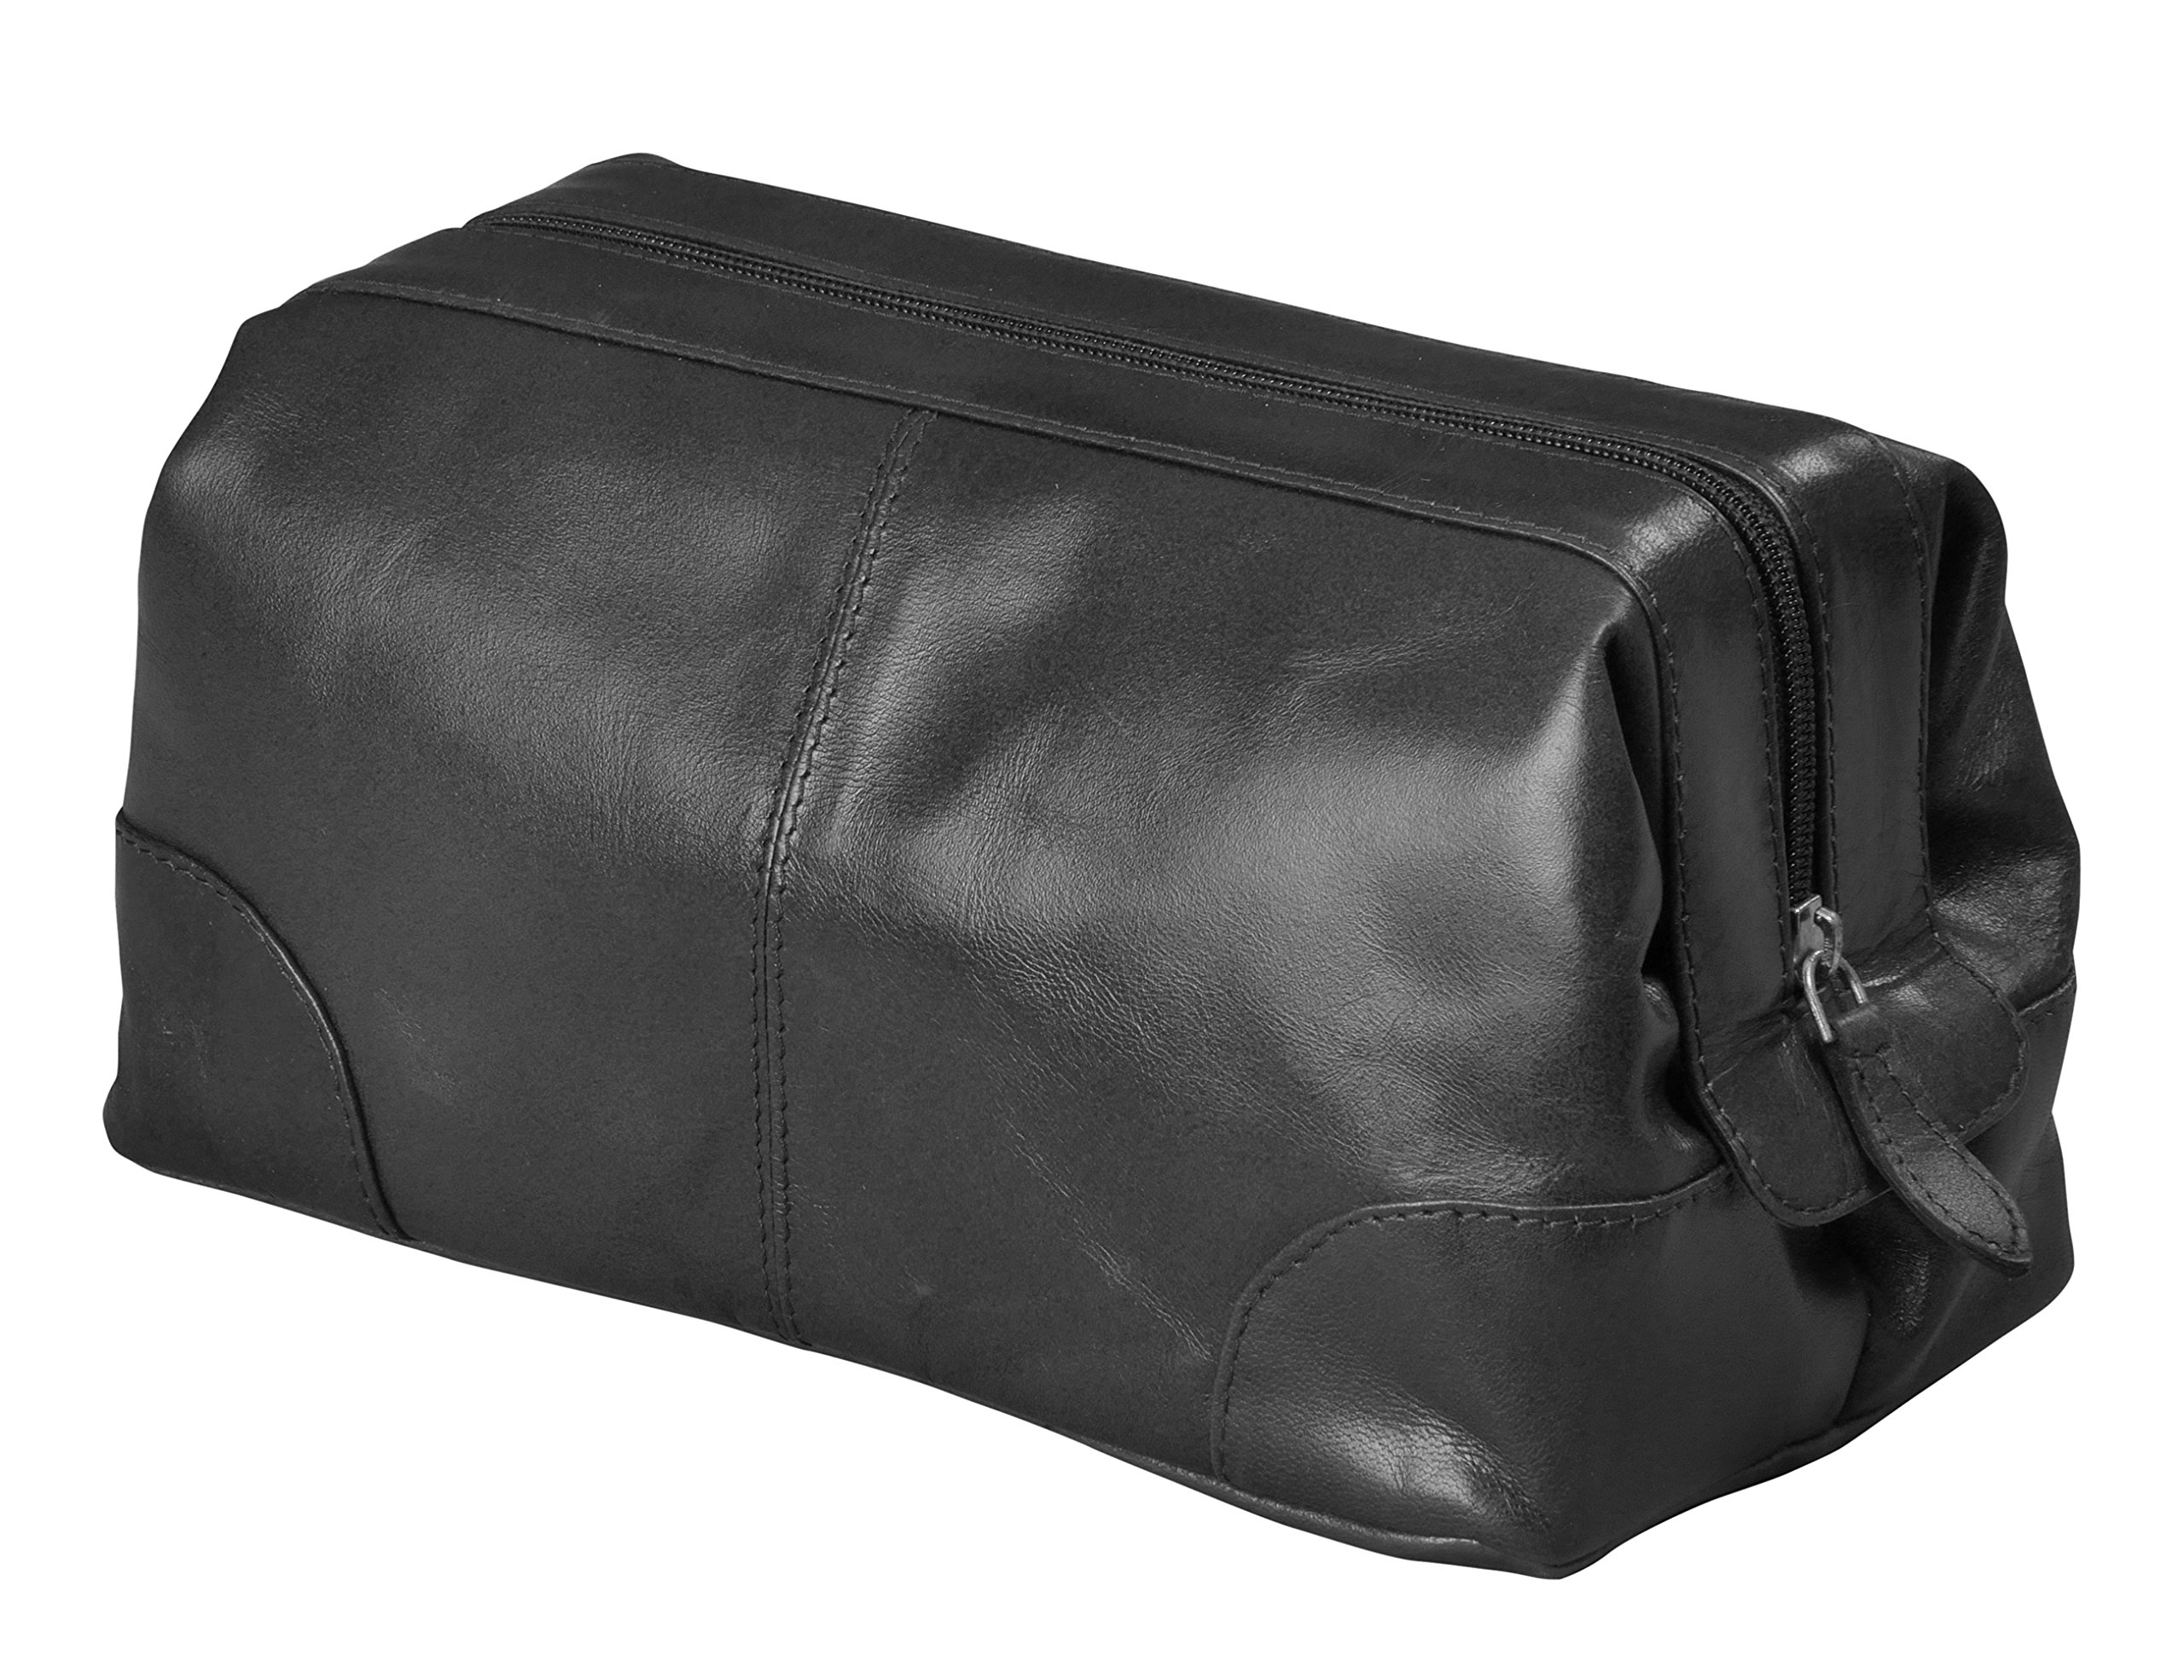 Mens Toiletry Bag Dopp Kit by Bayfield Bags-Small Compact Minimalist Glossy  Leather Shaving Kit 404143462f1ff